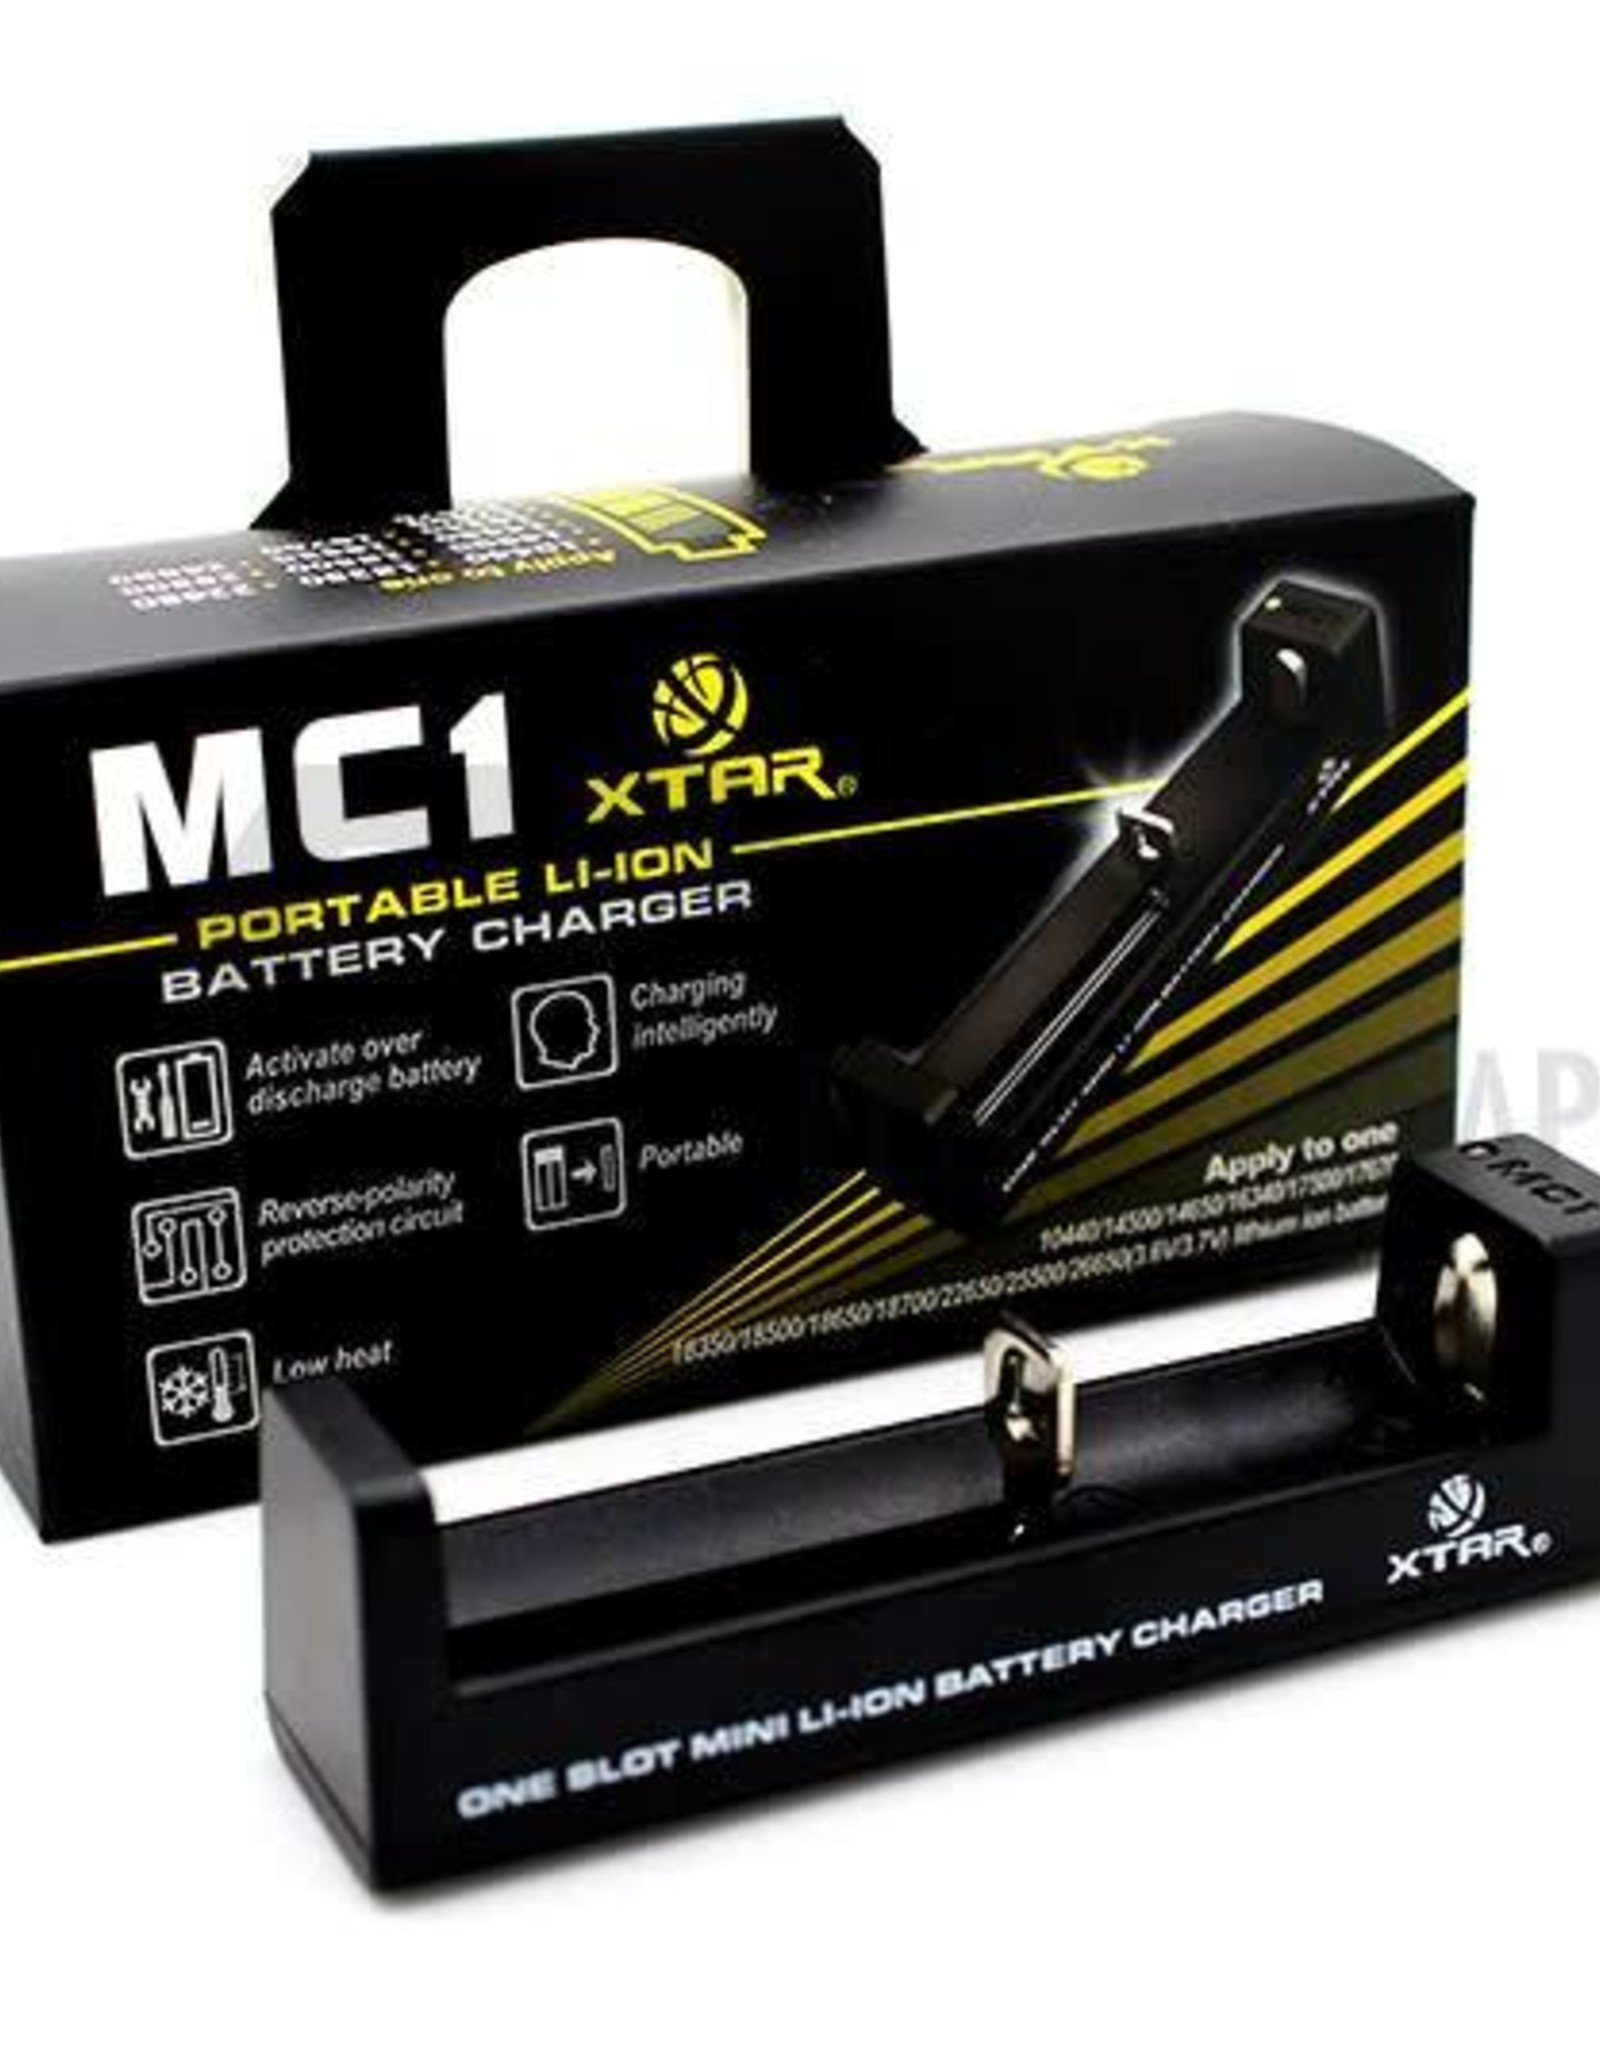 Xtar Xtar MC1 Single Bay Charger